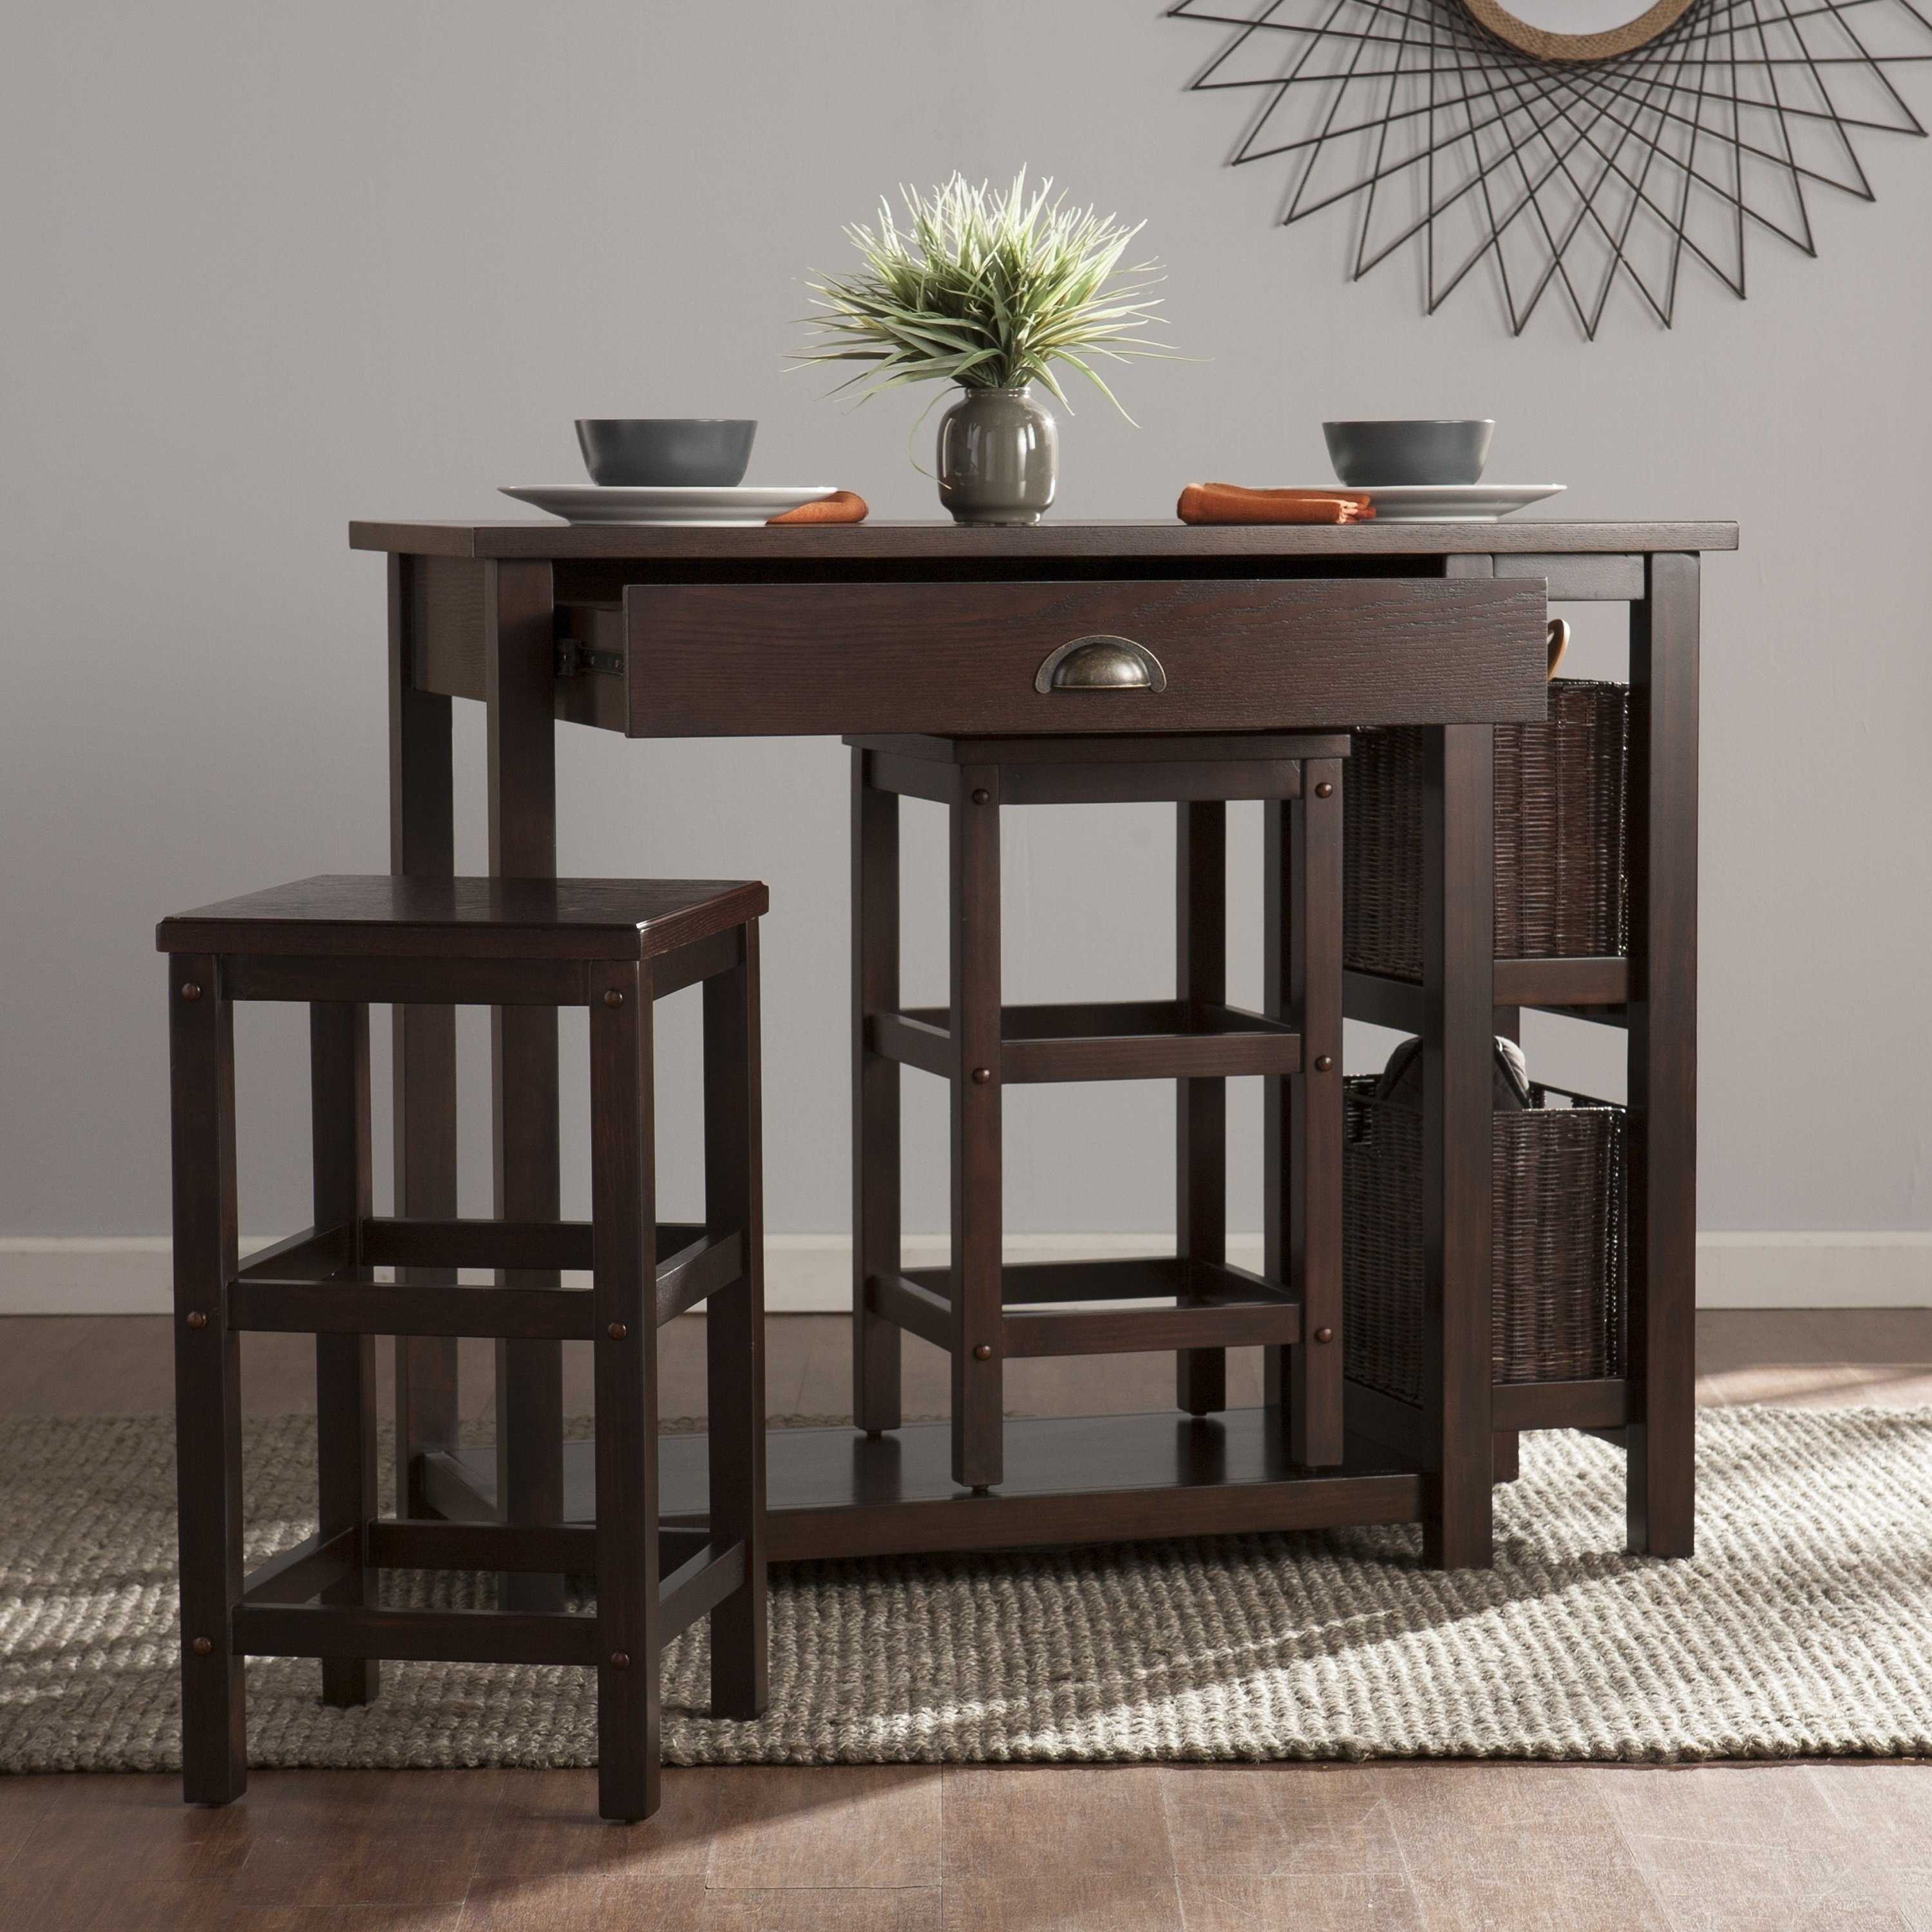 Shop Harper Blvd Benson 3 Piece Breakfast Set – Free Shipping Today Throughout Most Recent Harper 5 Piece Counter Sets (Image 15 of 20)